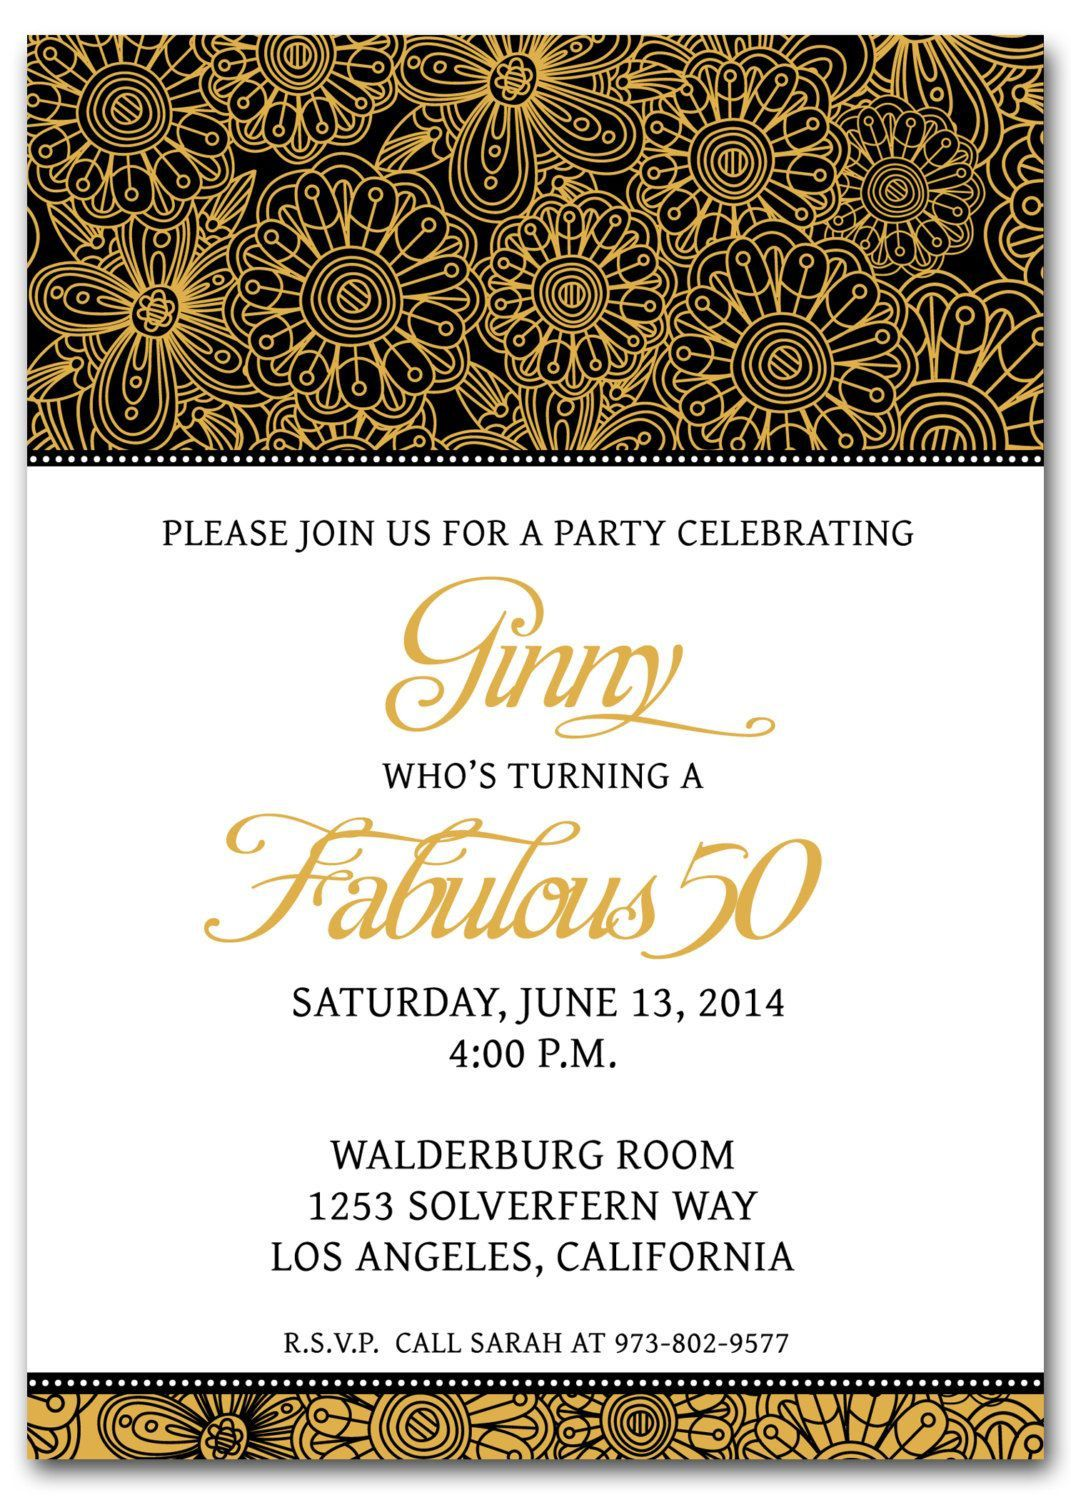 002 Outstanding 50th Birthday Invitation Template Image  For Him Microsoft Word FreeFull